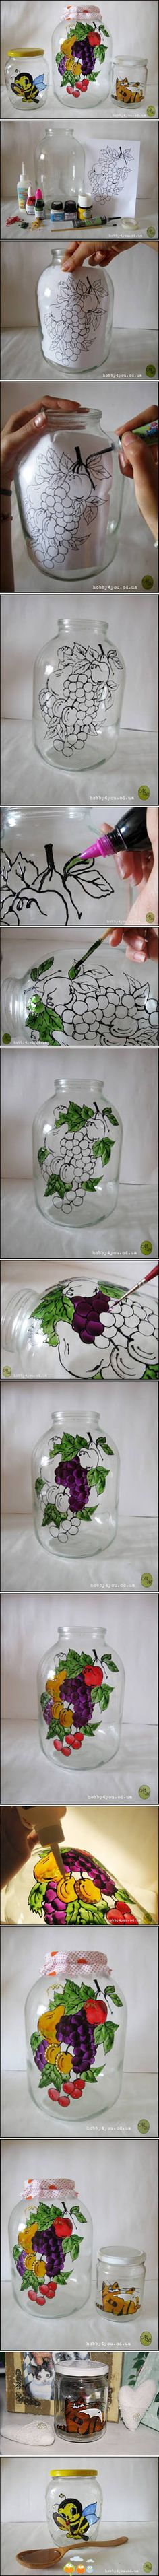 DIY : painting a glass jar/vase. Cool idea